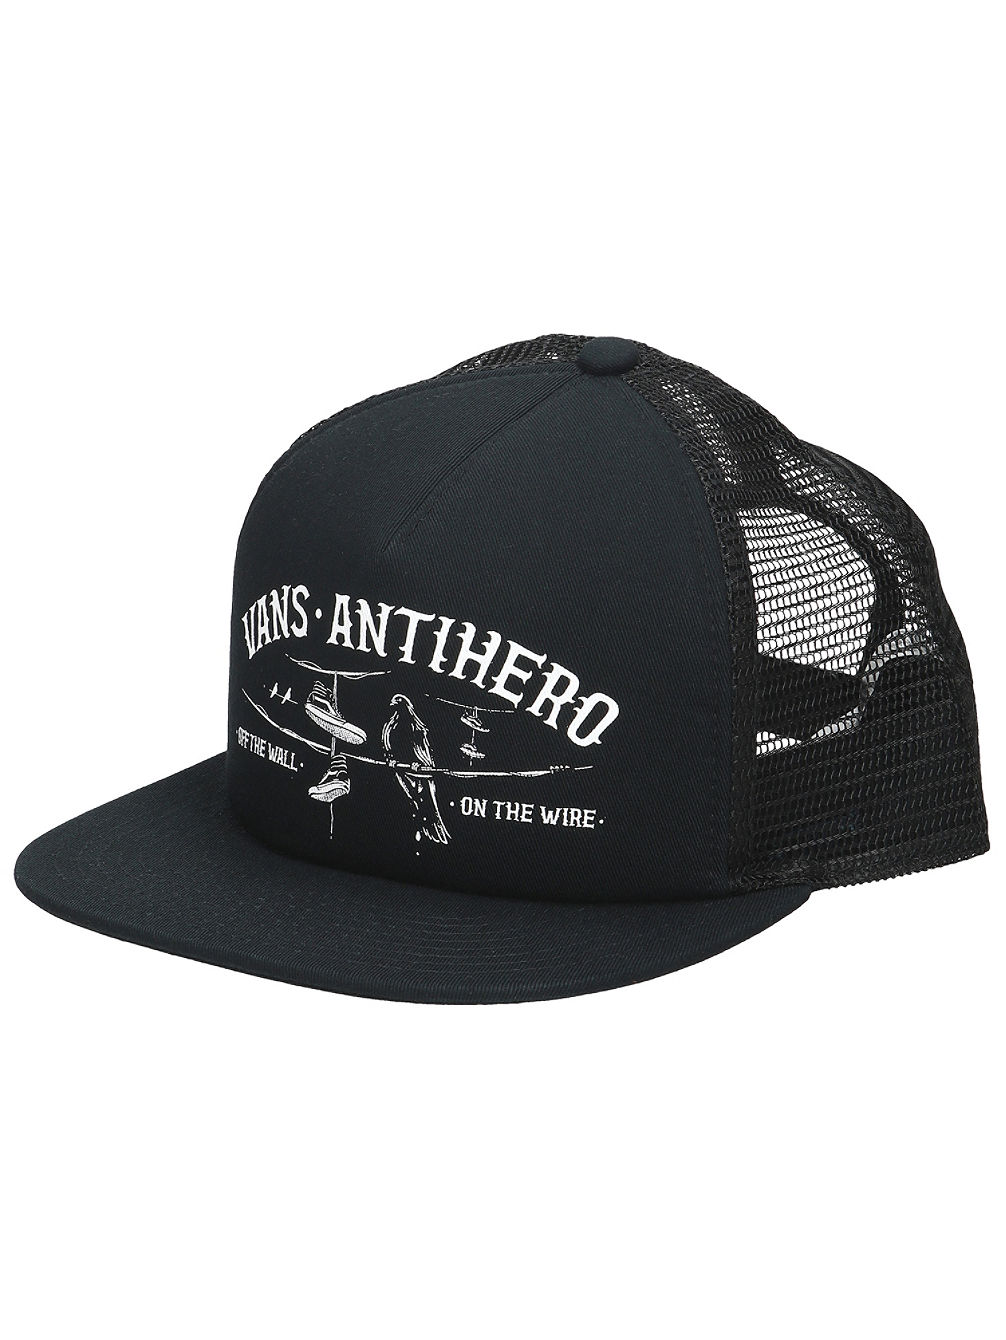 36d3fa9f460 Buy Vans X Antihero Wired Trucker Cap online at blue-tomato.com